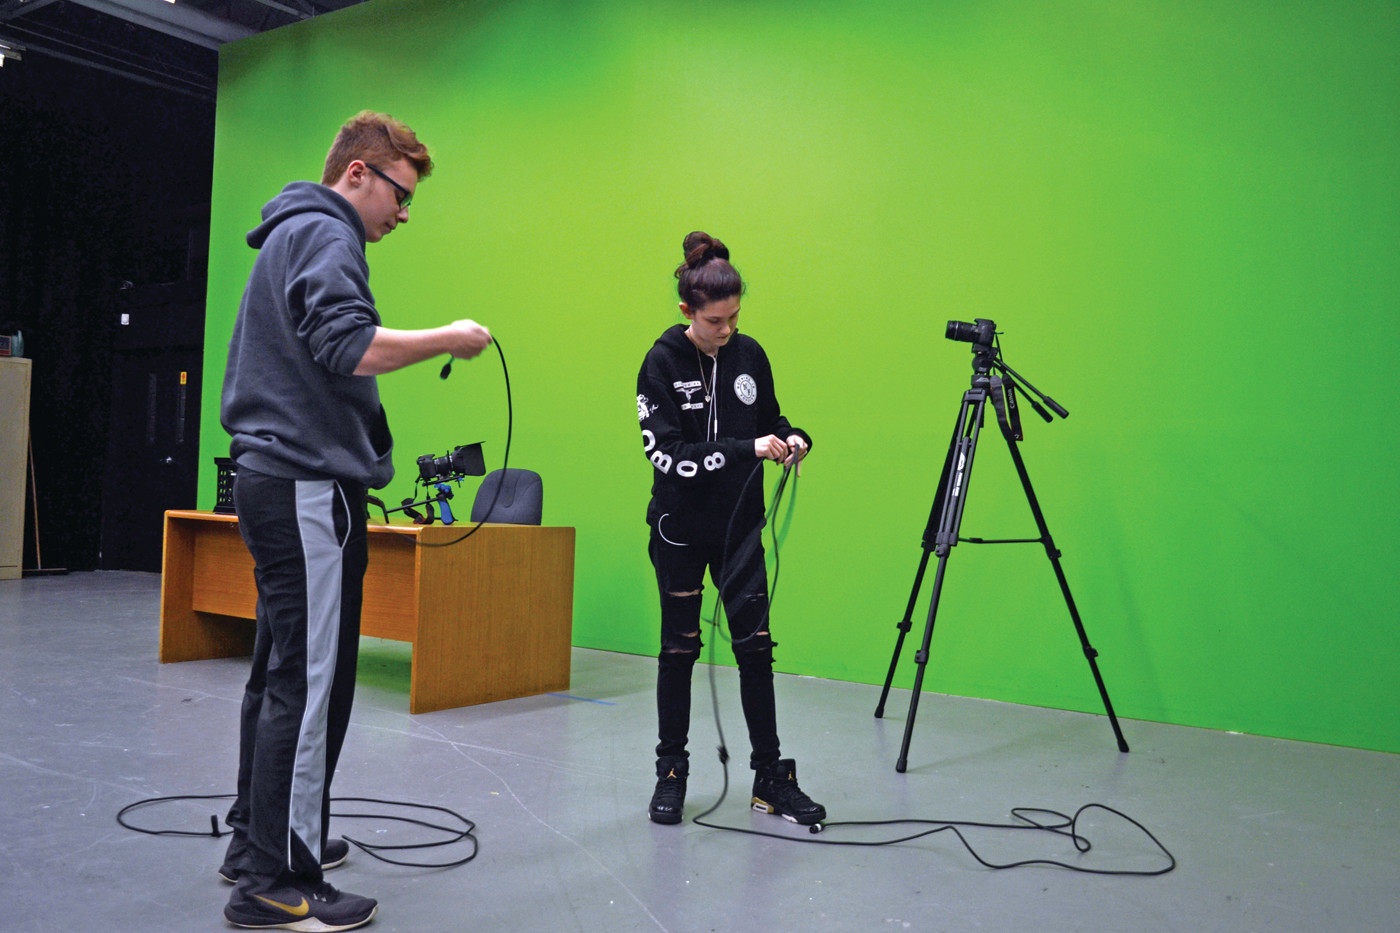 WRAP IT UP: Adam Rega and Halie Papa race to see who can wrap up a length of cording neatly and correctly first. Behind them is the enormous green screen, which is the creative and practical result of a large wall painted bright green.